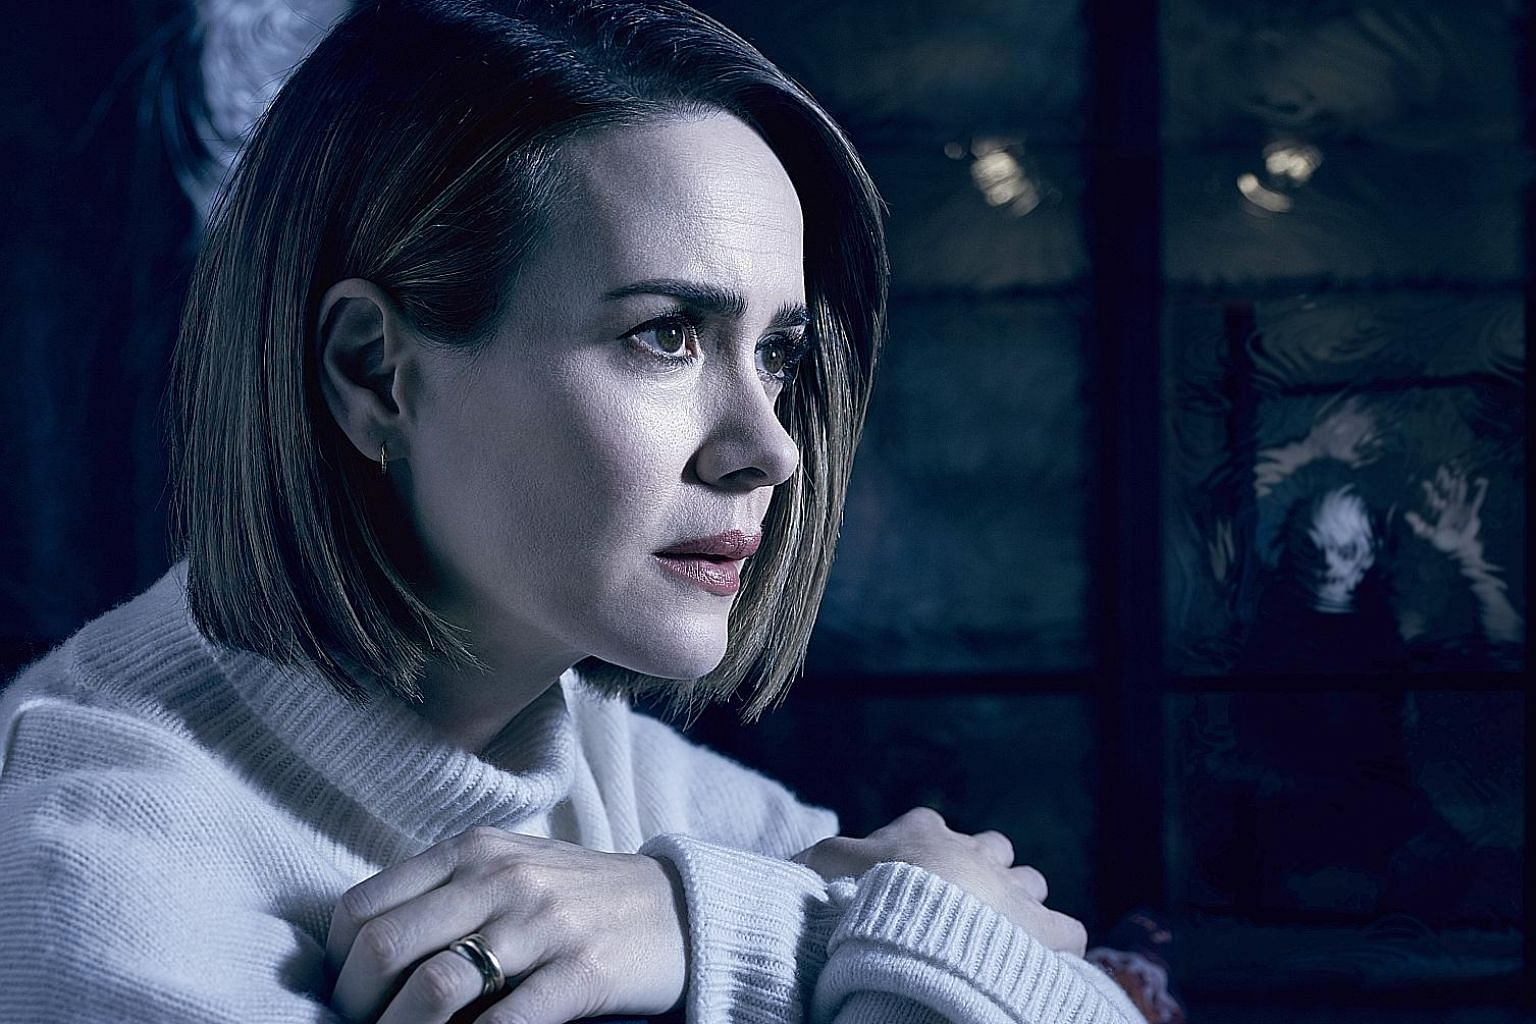 Sarah Paulson has starred in every season of Ryan Murphy's American Horror Story anthology series since it debuted in 2011.